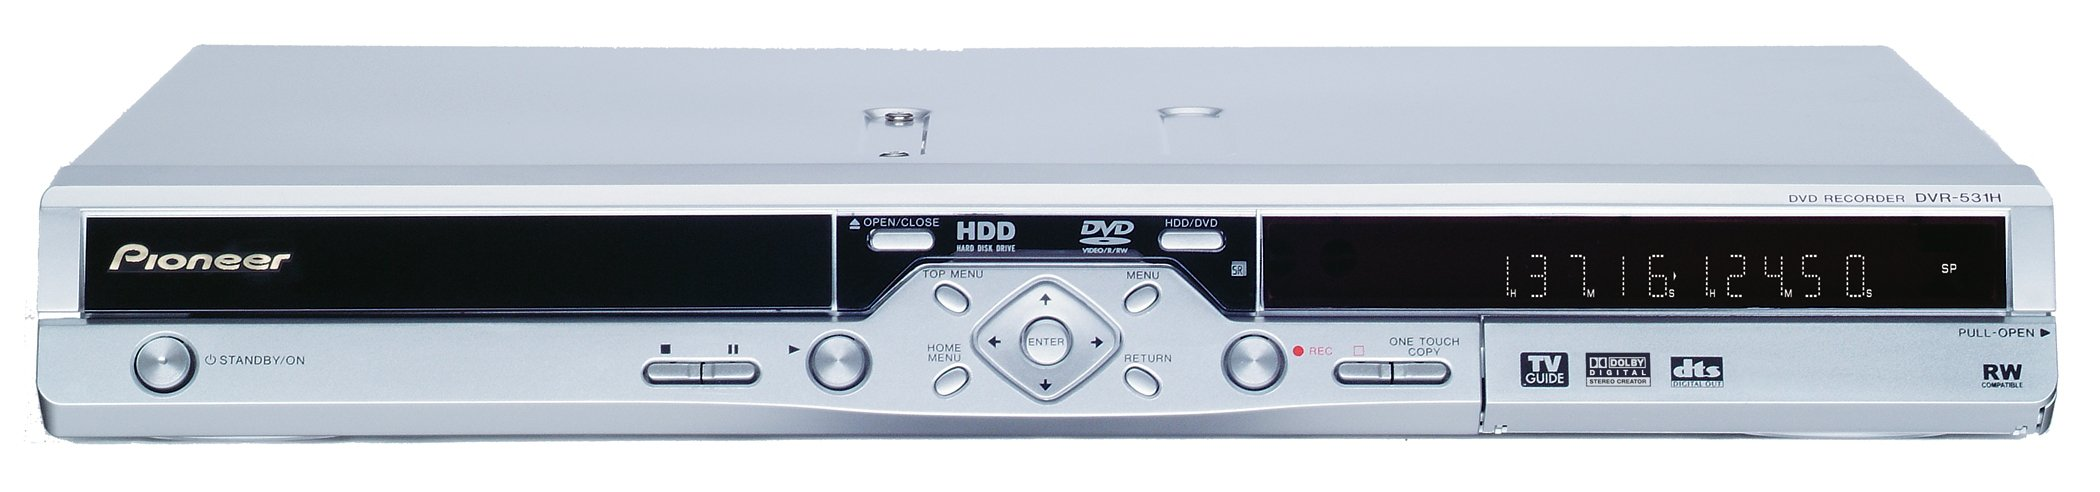 Refurbished Pioneer DVR-531H Digital Video Recorder/DVD Recorder with 80 GB Hard Drive